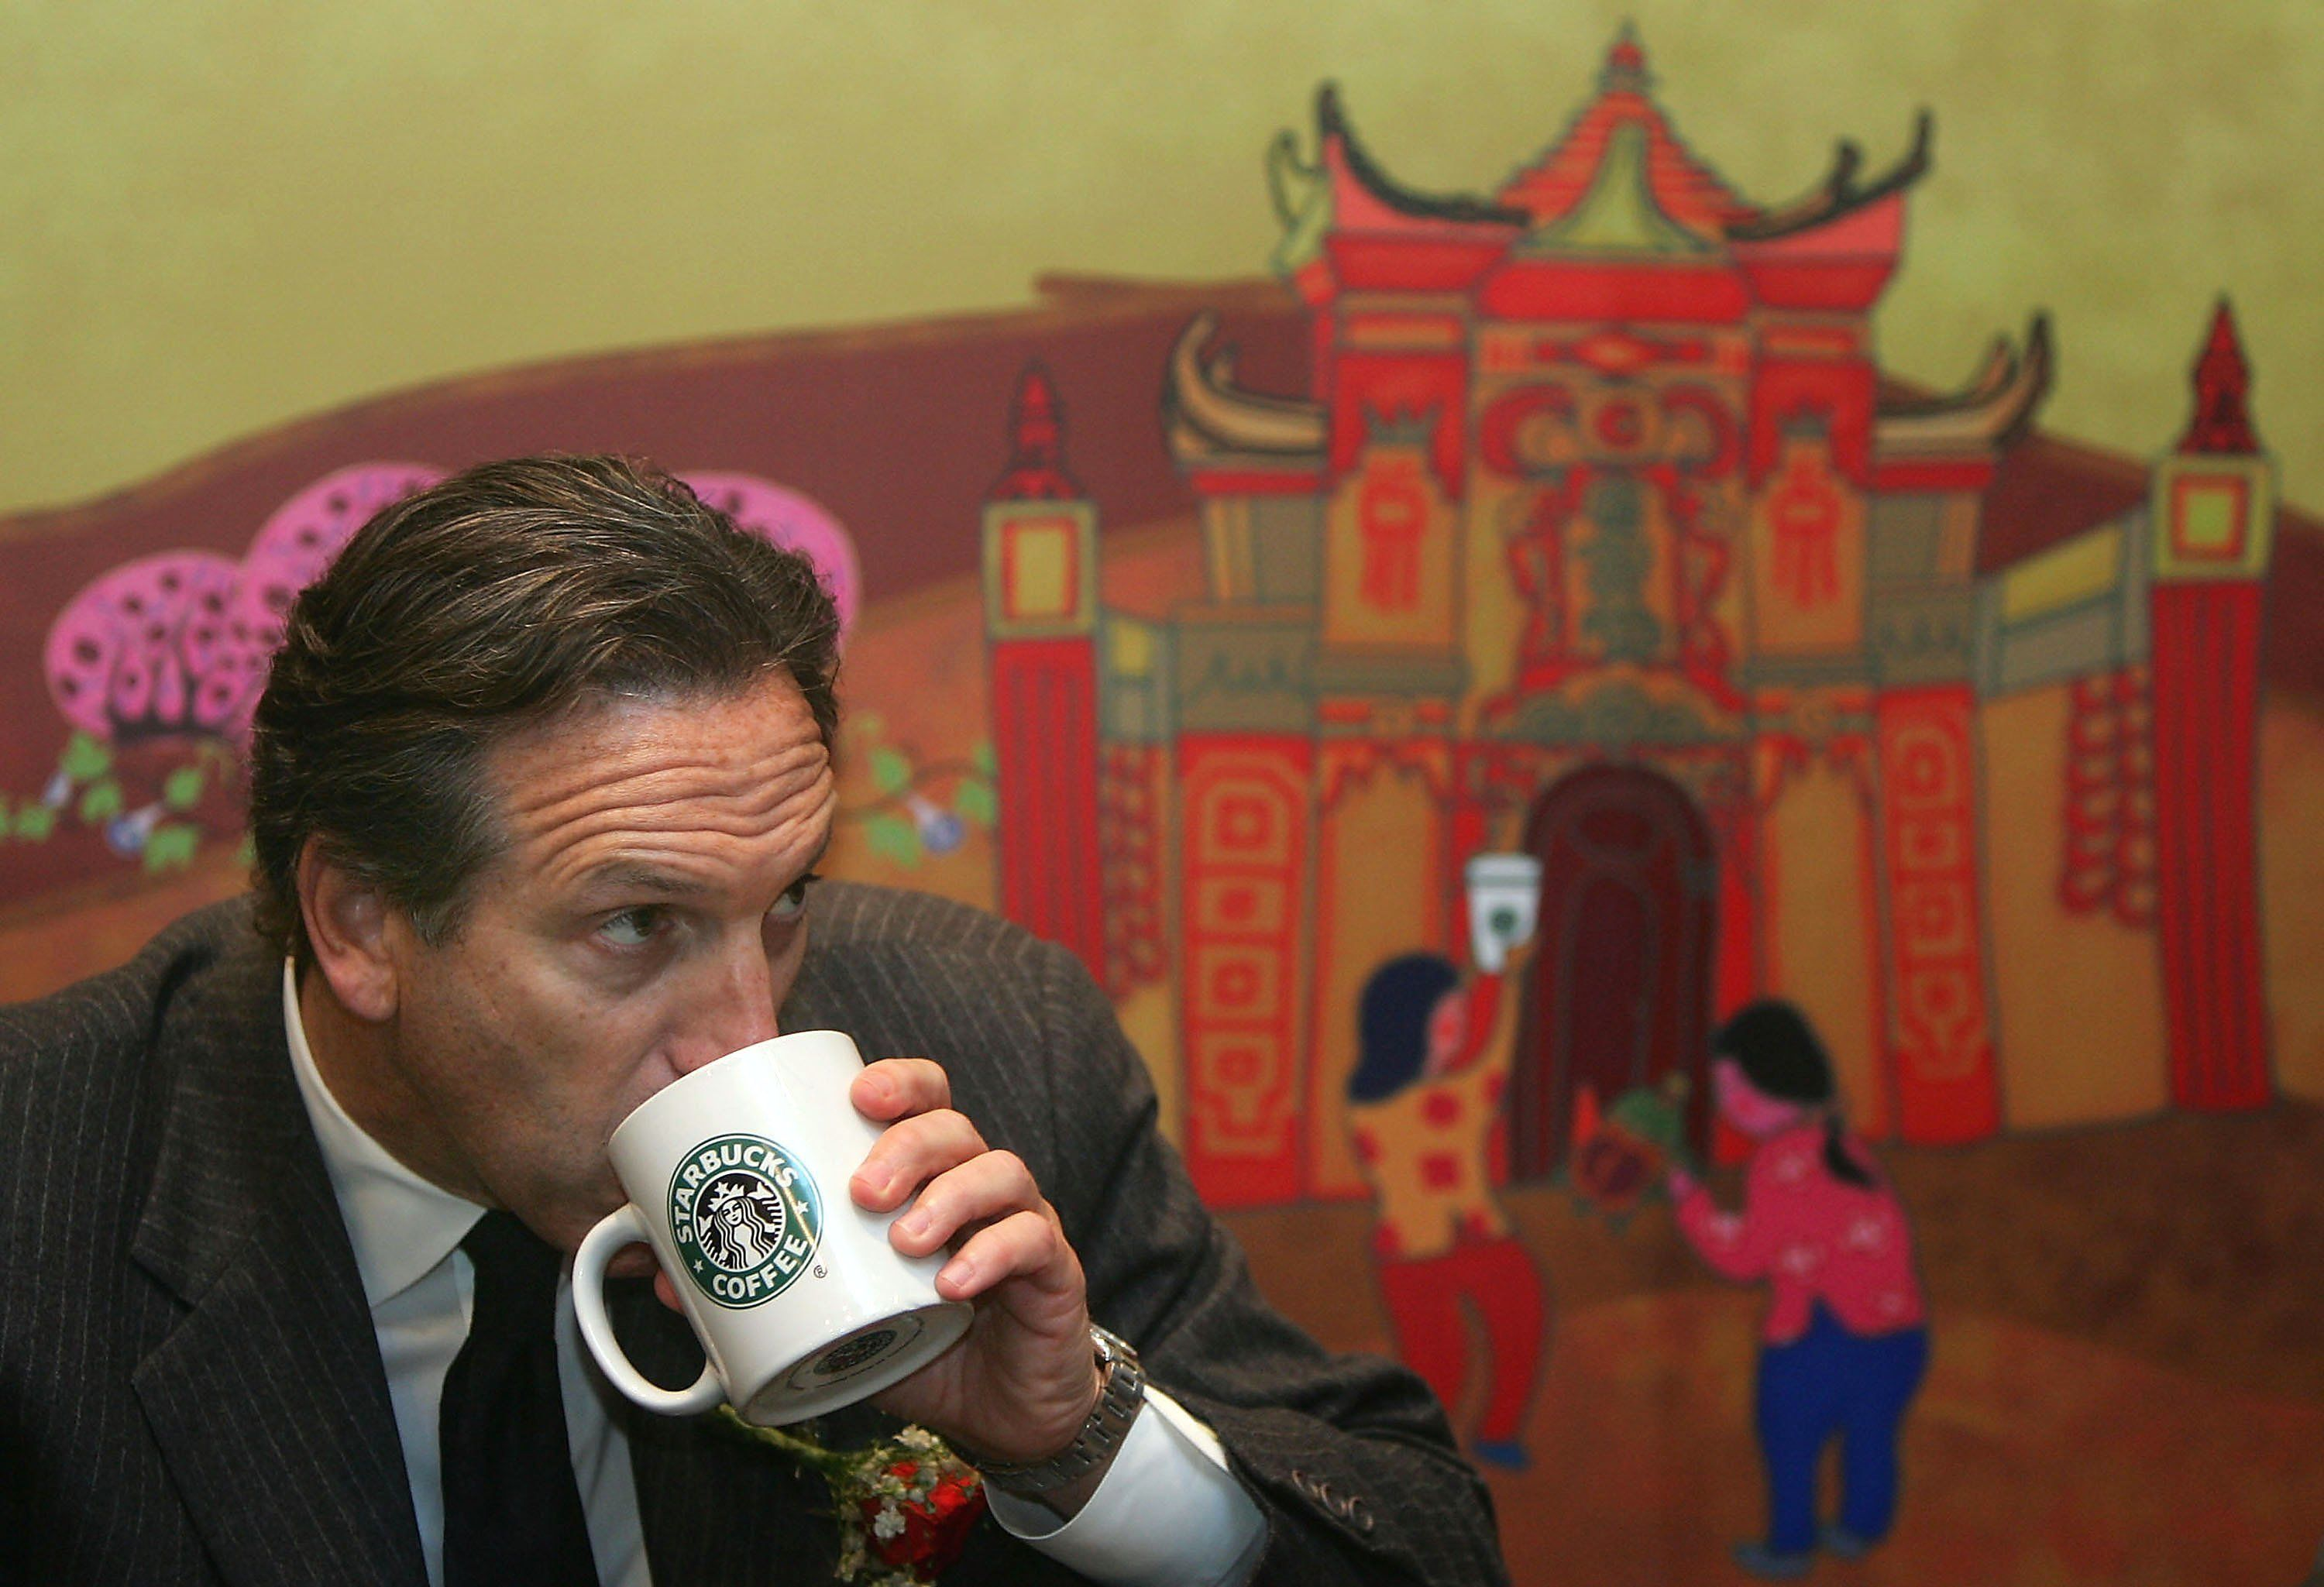 CHONGQING, CHINA - FEBRUARY 16: (CHINA OUT) Howard Schultz, president of the US Starbucks coffee chain, drinks a cup of coffee in the first Starbucks store on February 16, 2006 in Chongqing Municipality, China. Starbucks is taking the plunge into the Chongqing market. The Chinese coffee market is expected to grow by 70 per cent in total sales volume between 2003 and 2008 to reach 11,073 tons, Euromonitor's findings indicate. (Photo by China Photos/Getty Images)